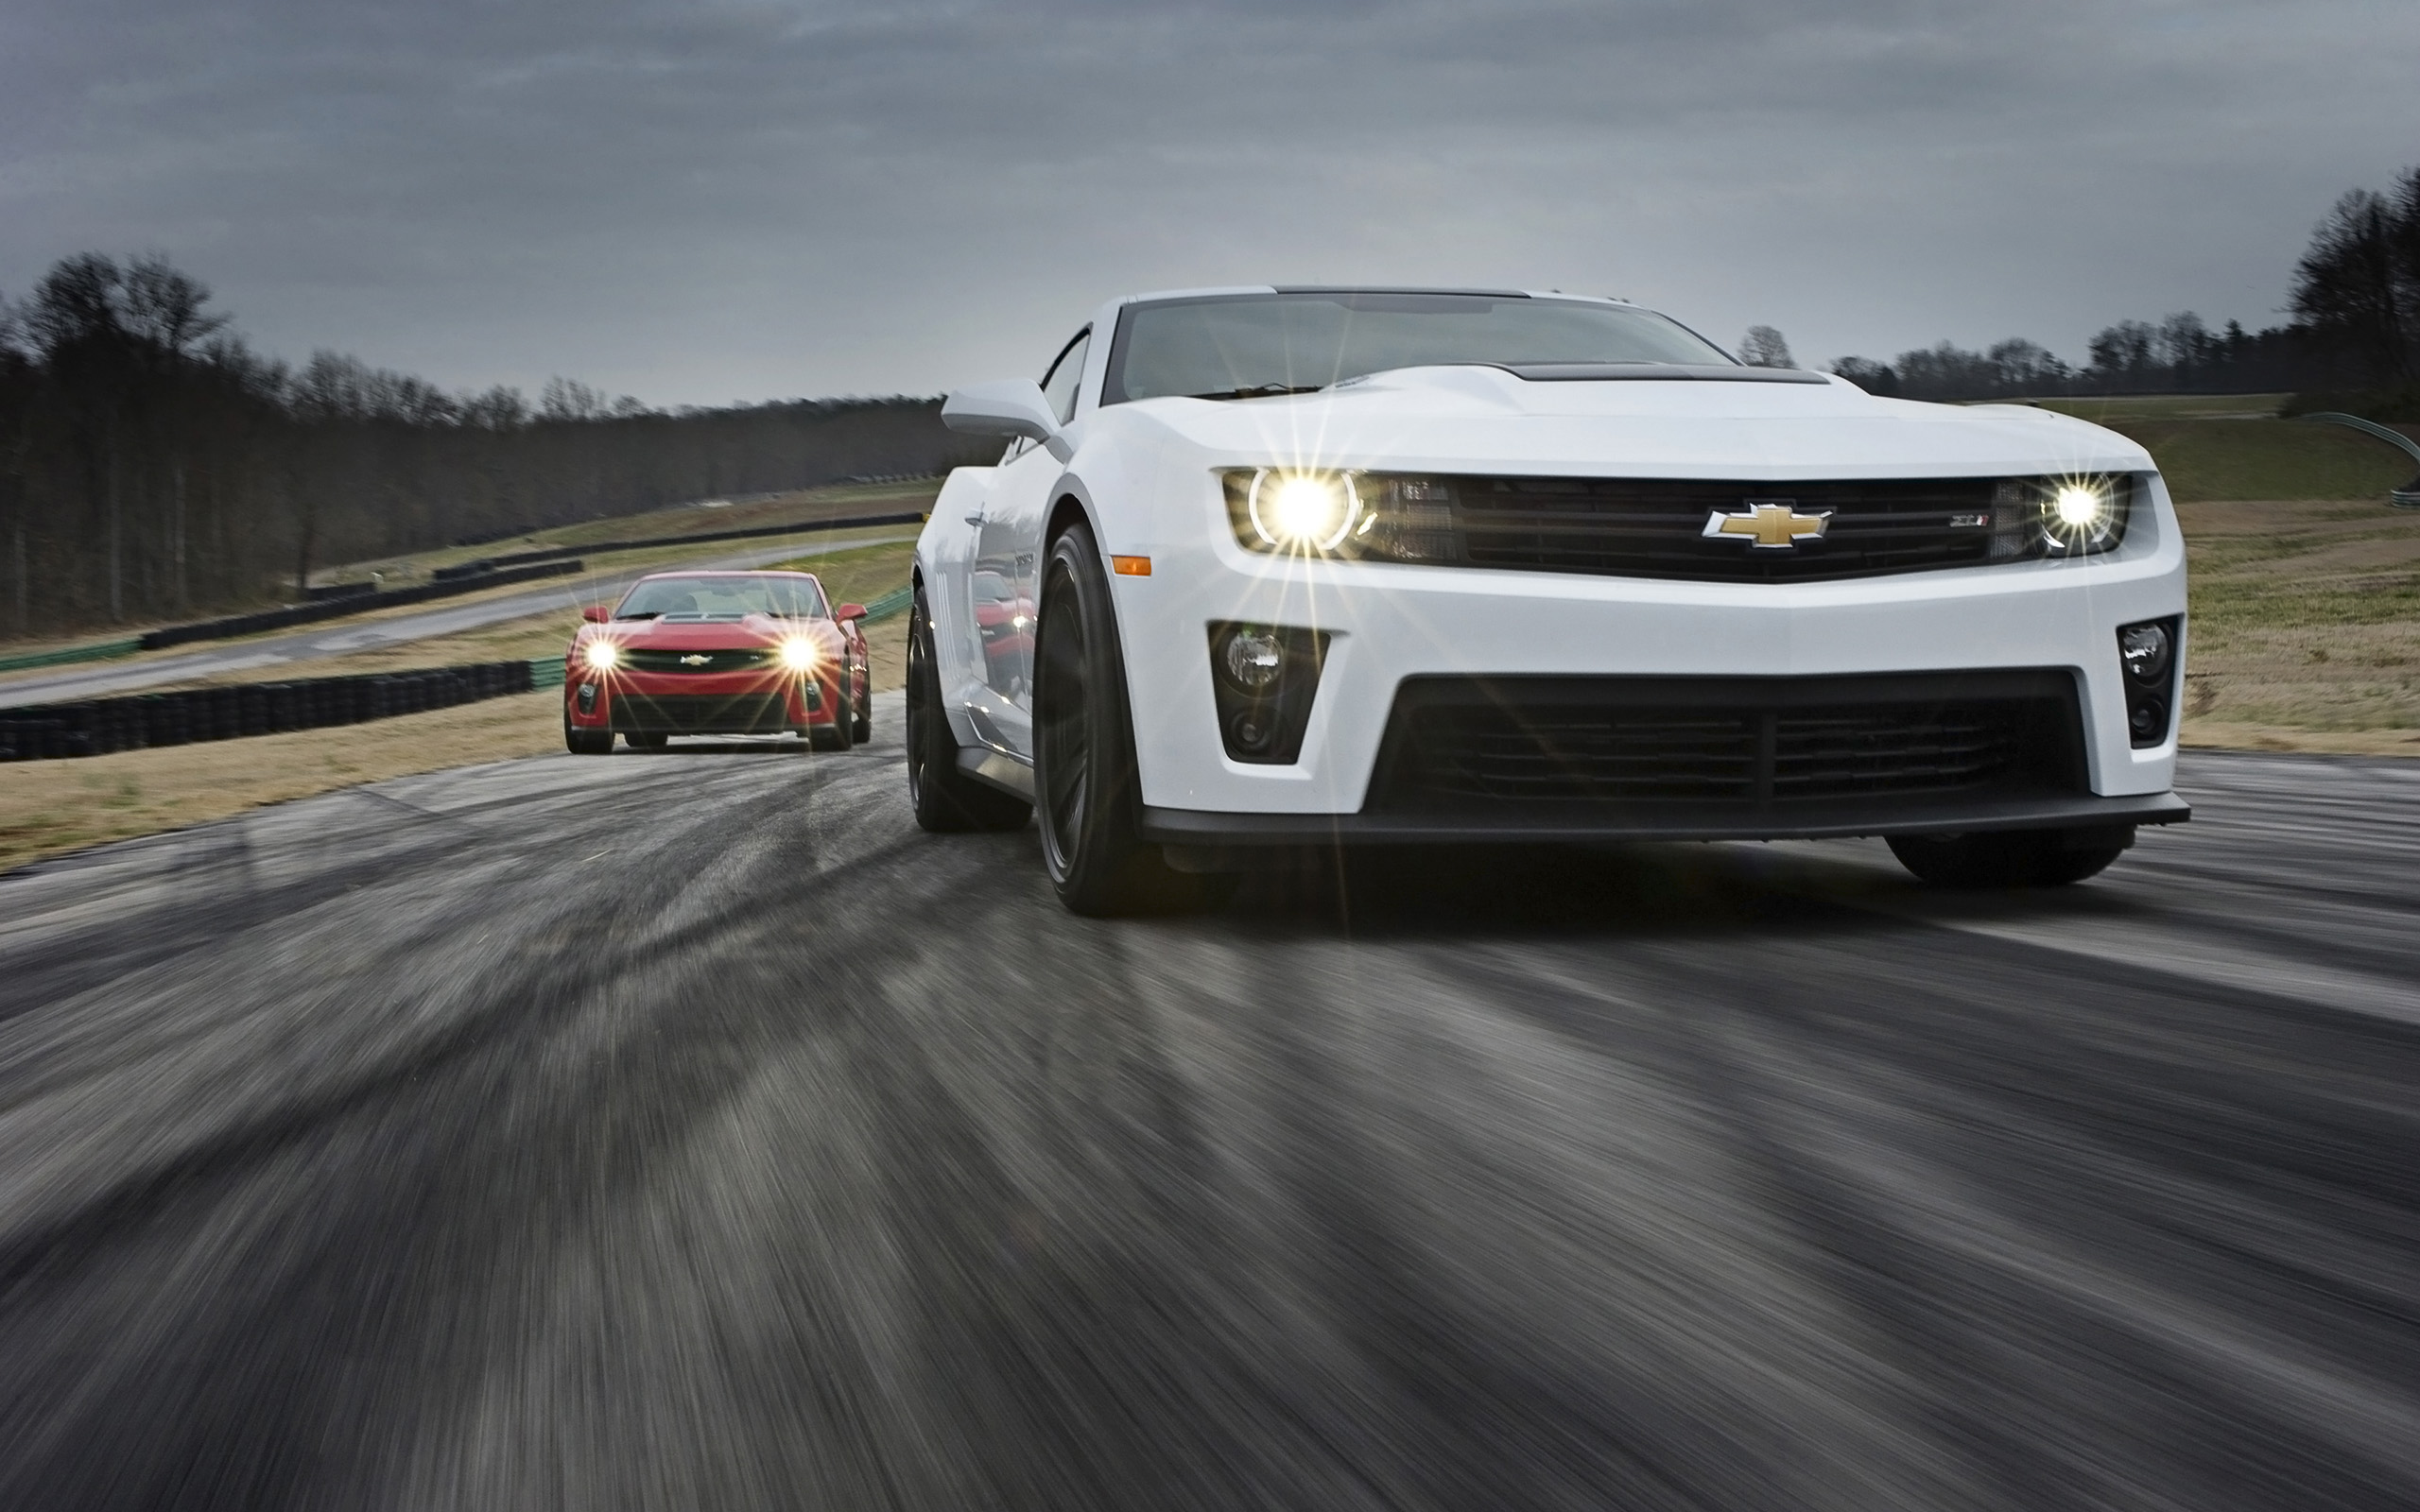 2014 Chevrolet Camaro ZL1 Wallpaper HD Car Wallpapers 2560x1600